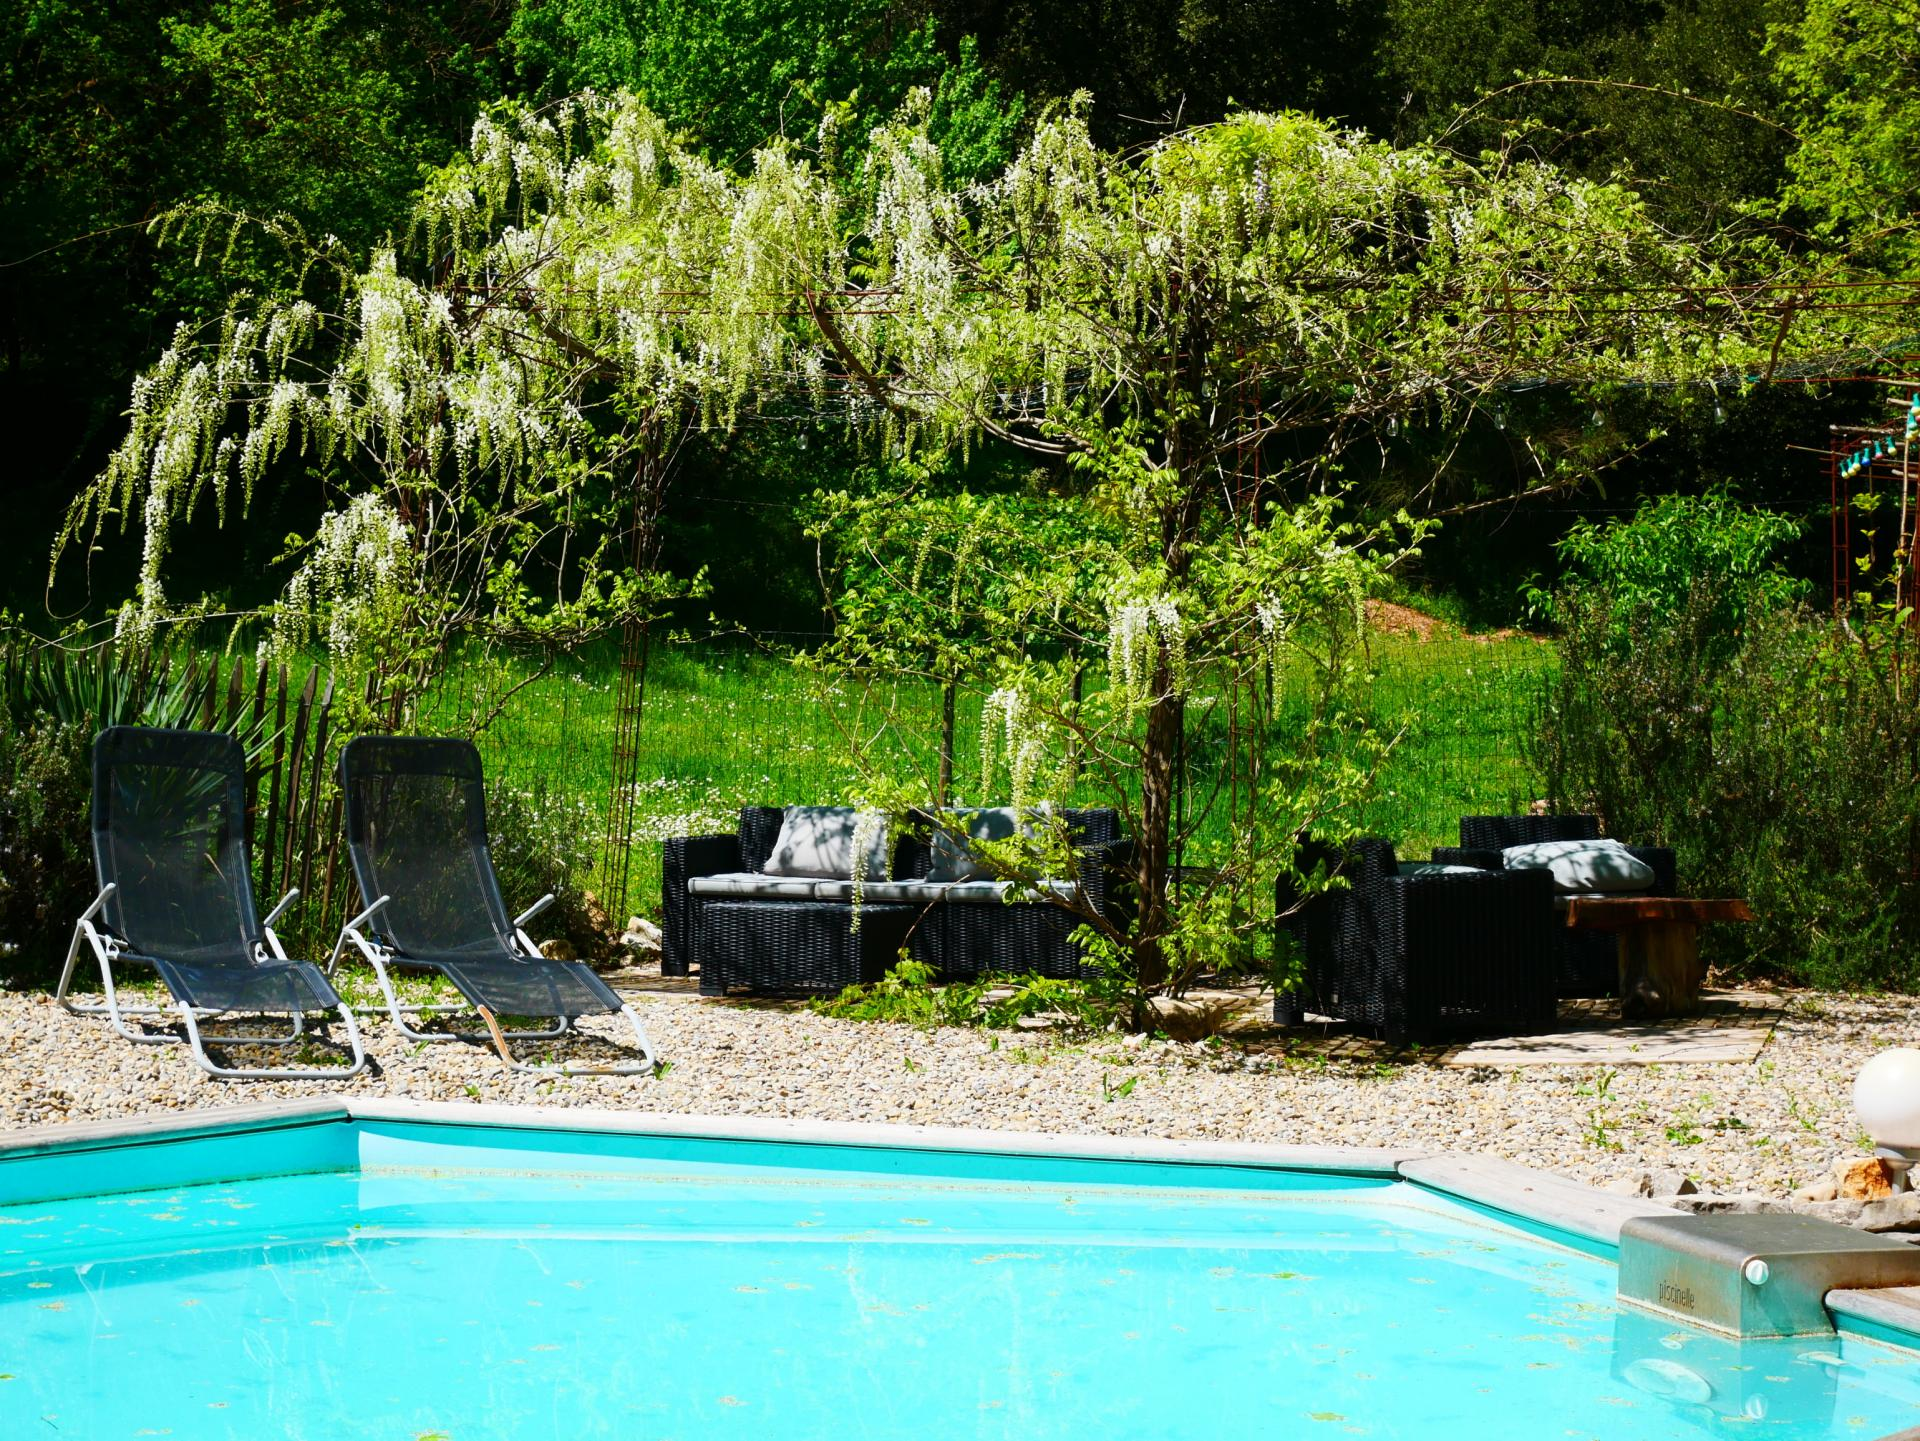 Redim week end jacuzzi gite location vacances verdon saint tropez provence 16 2 1